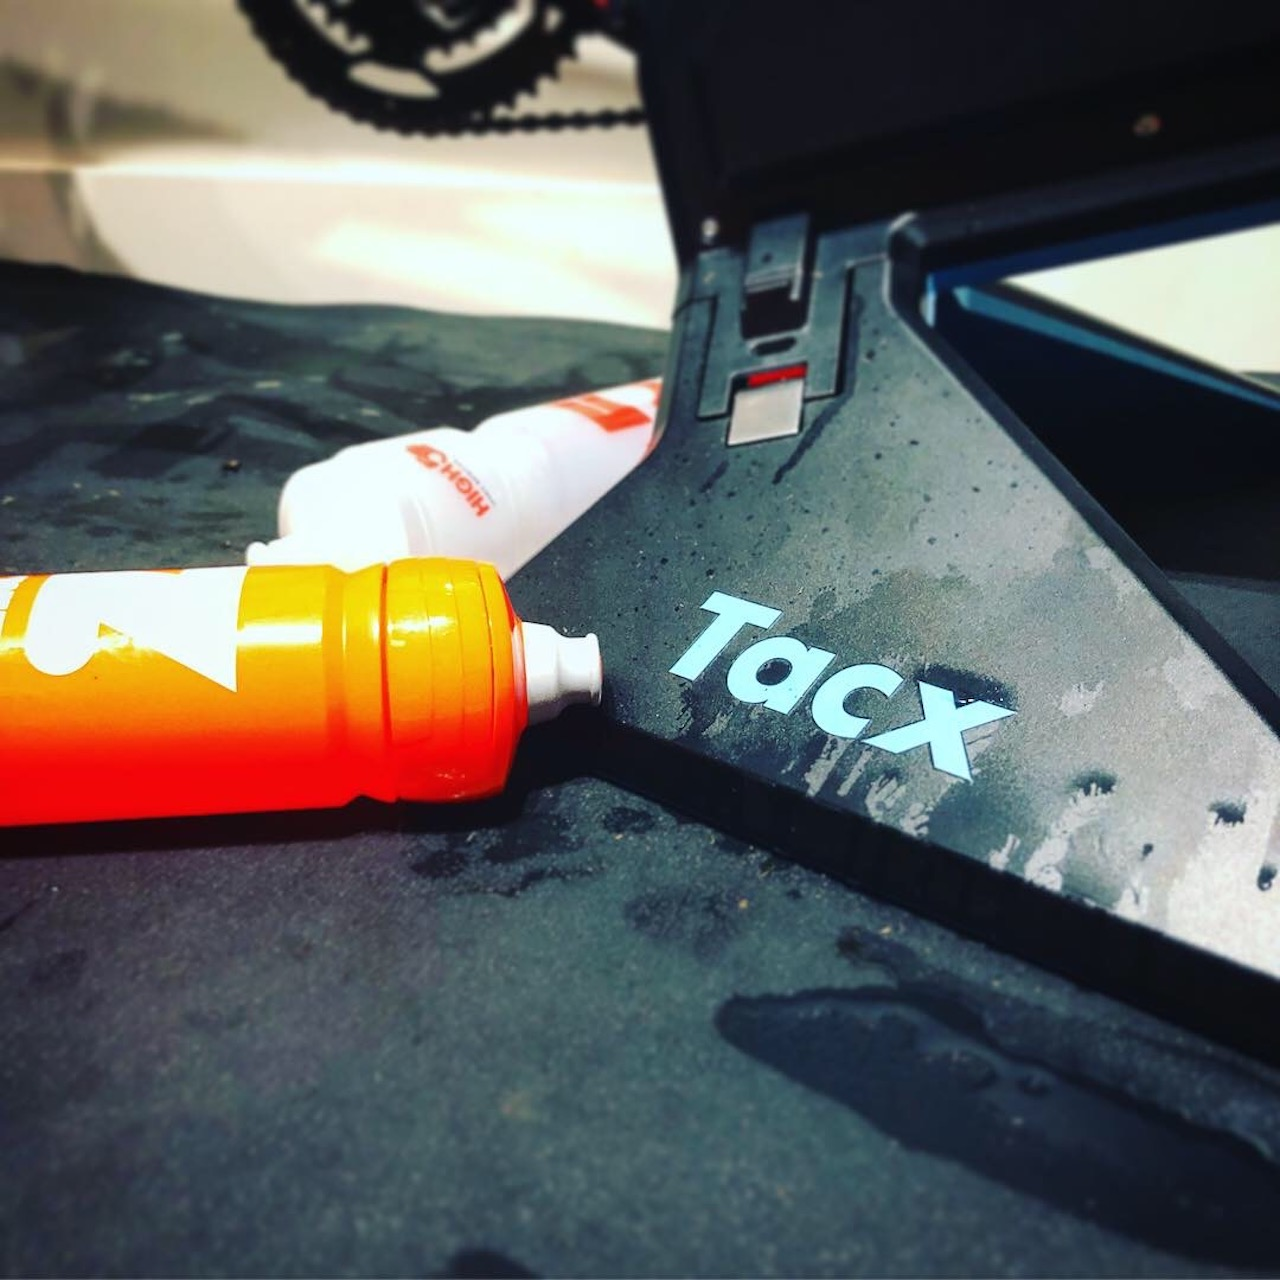 TitaniumGeek IMG 6019 1 Tacx NEO 2 Review | ZWIFT GEAR TEST Cycling Gear Reviews Smart Trainers Zwift  Zwift tacx neo 2 cycling   Image of IMG 6019 1